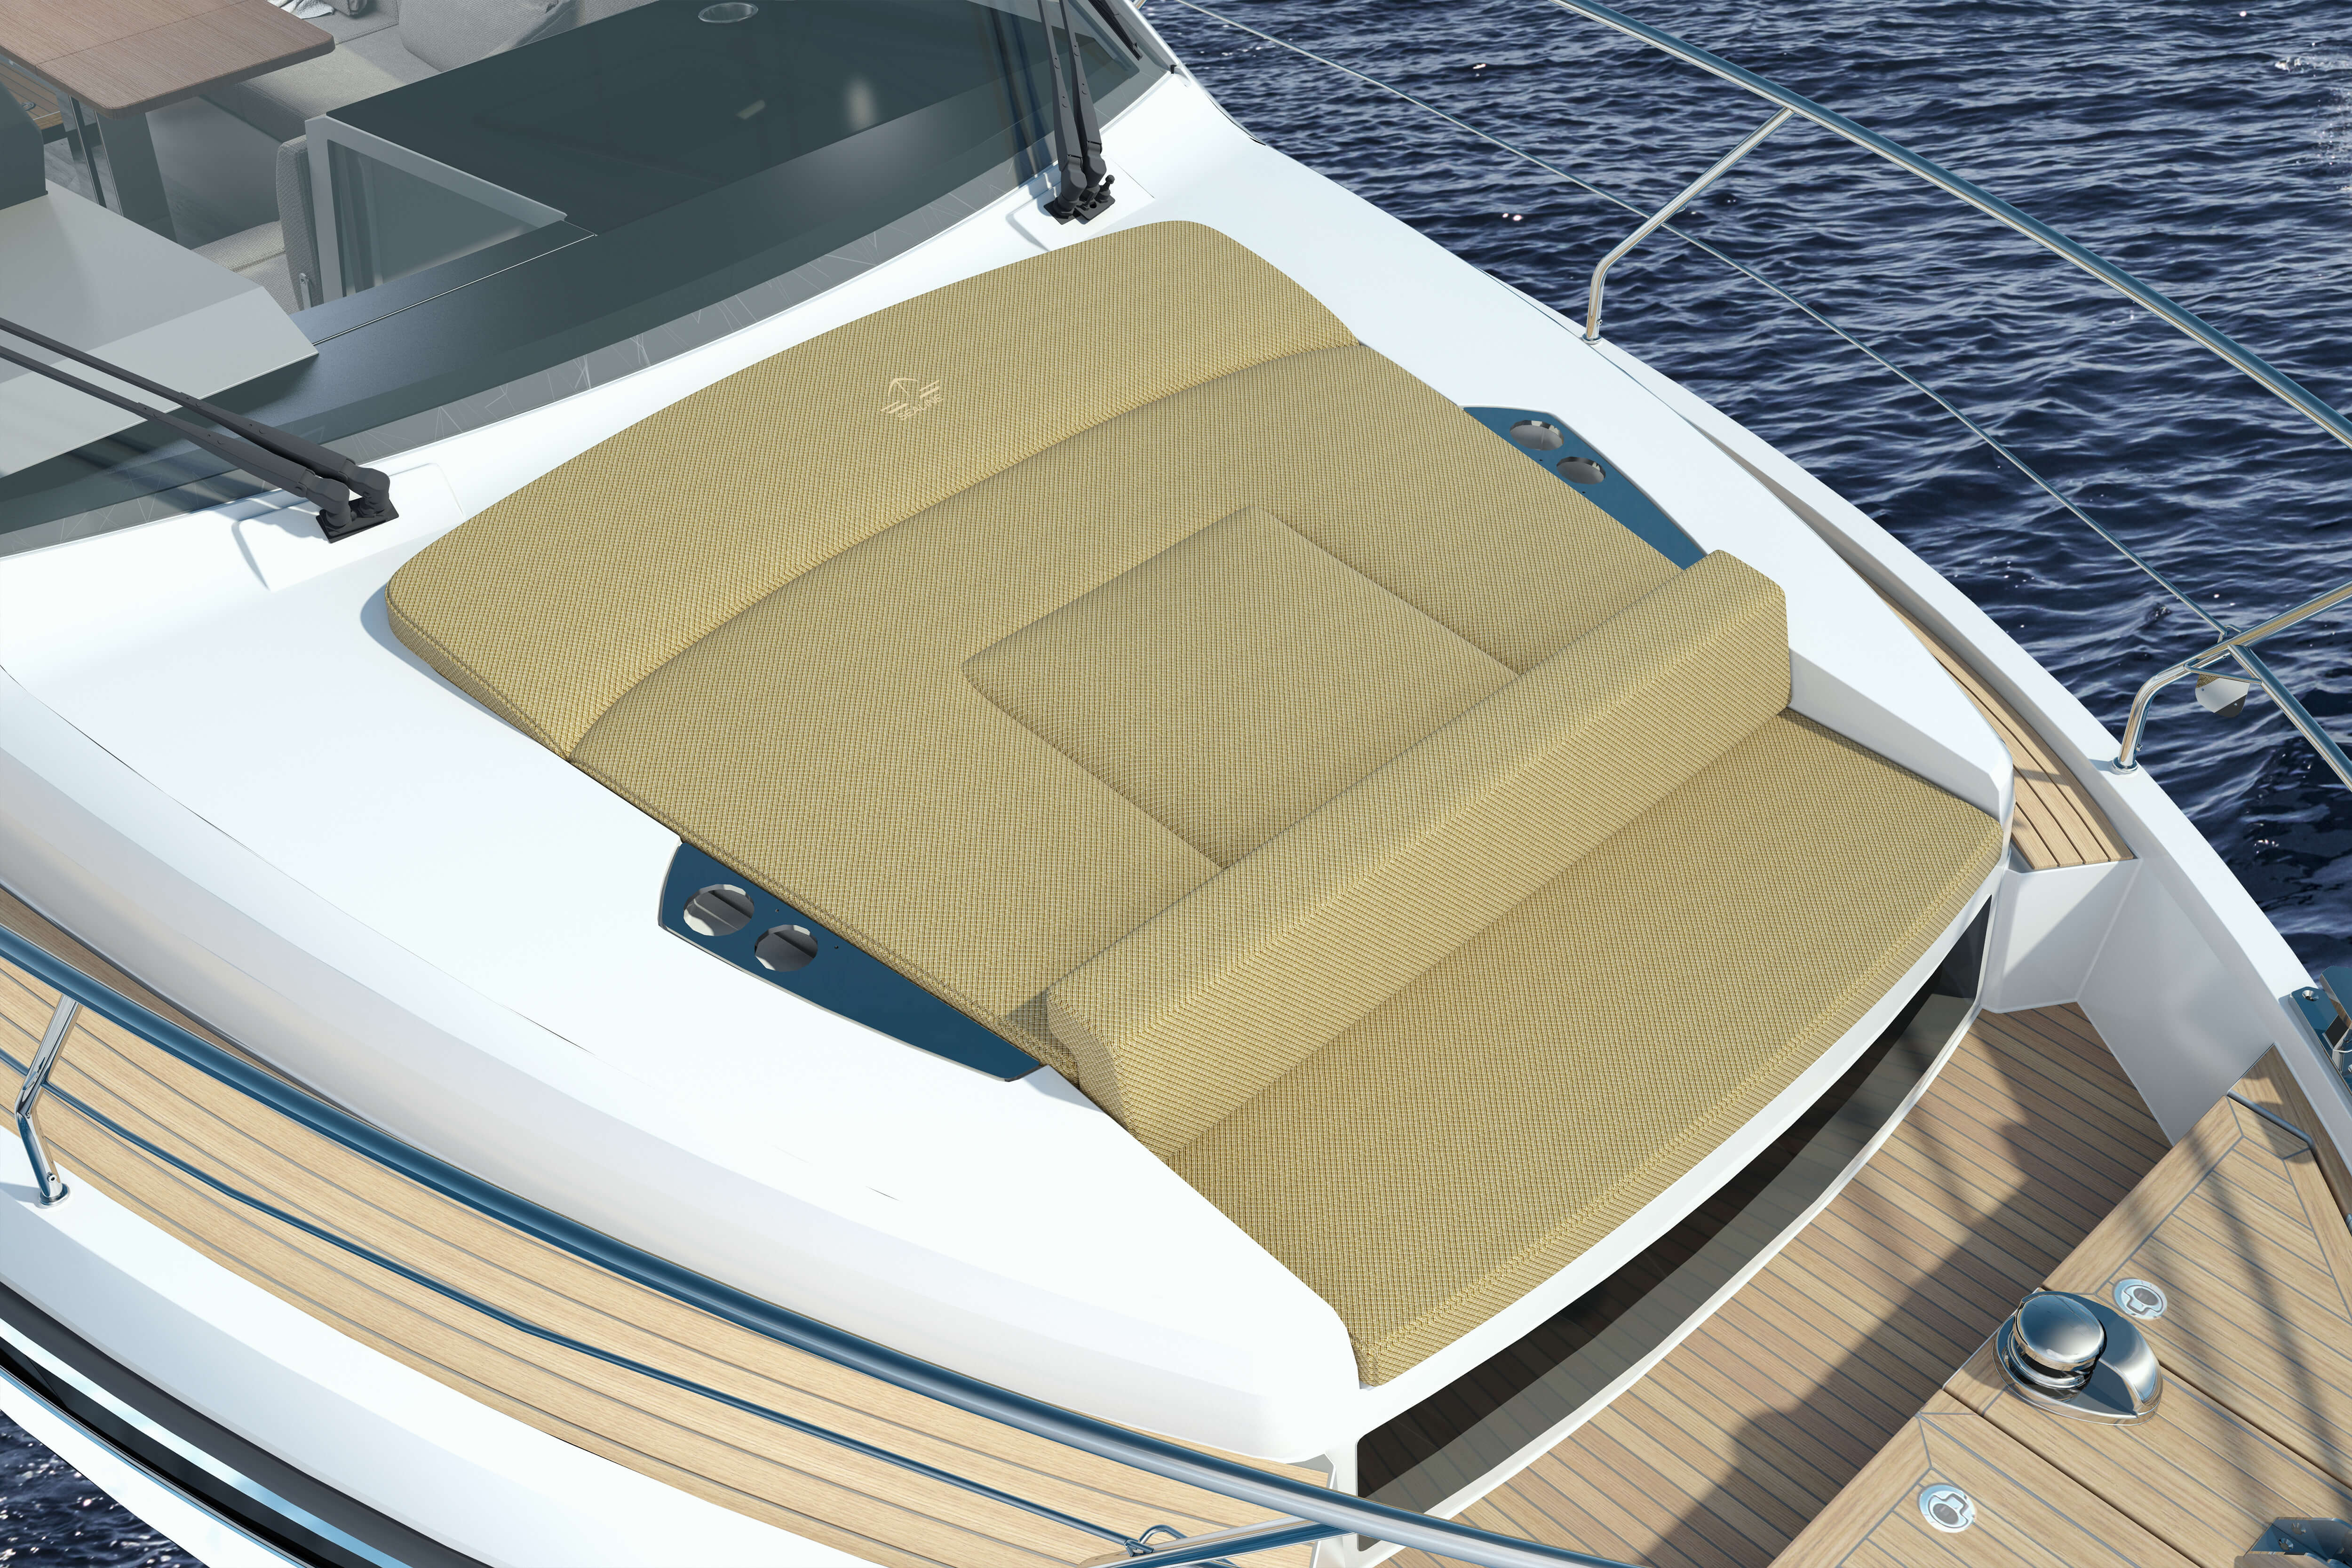 Sealine C335 deck | Arrange the cushions in the cockpit to suit your mood. | Sealine